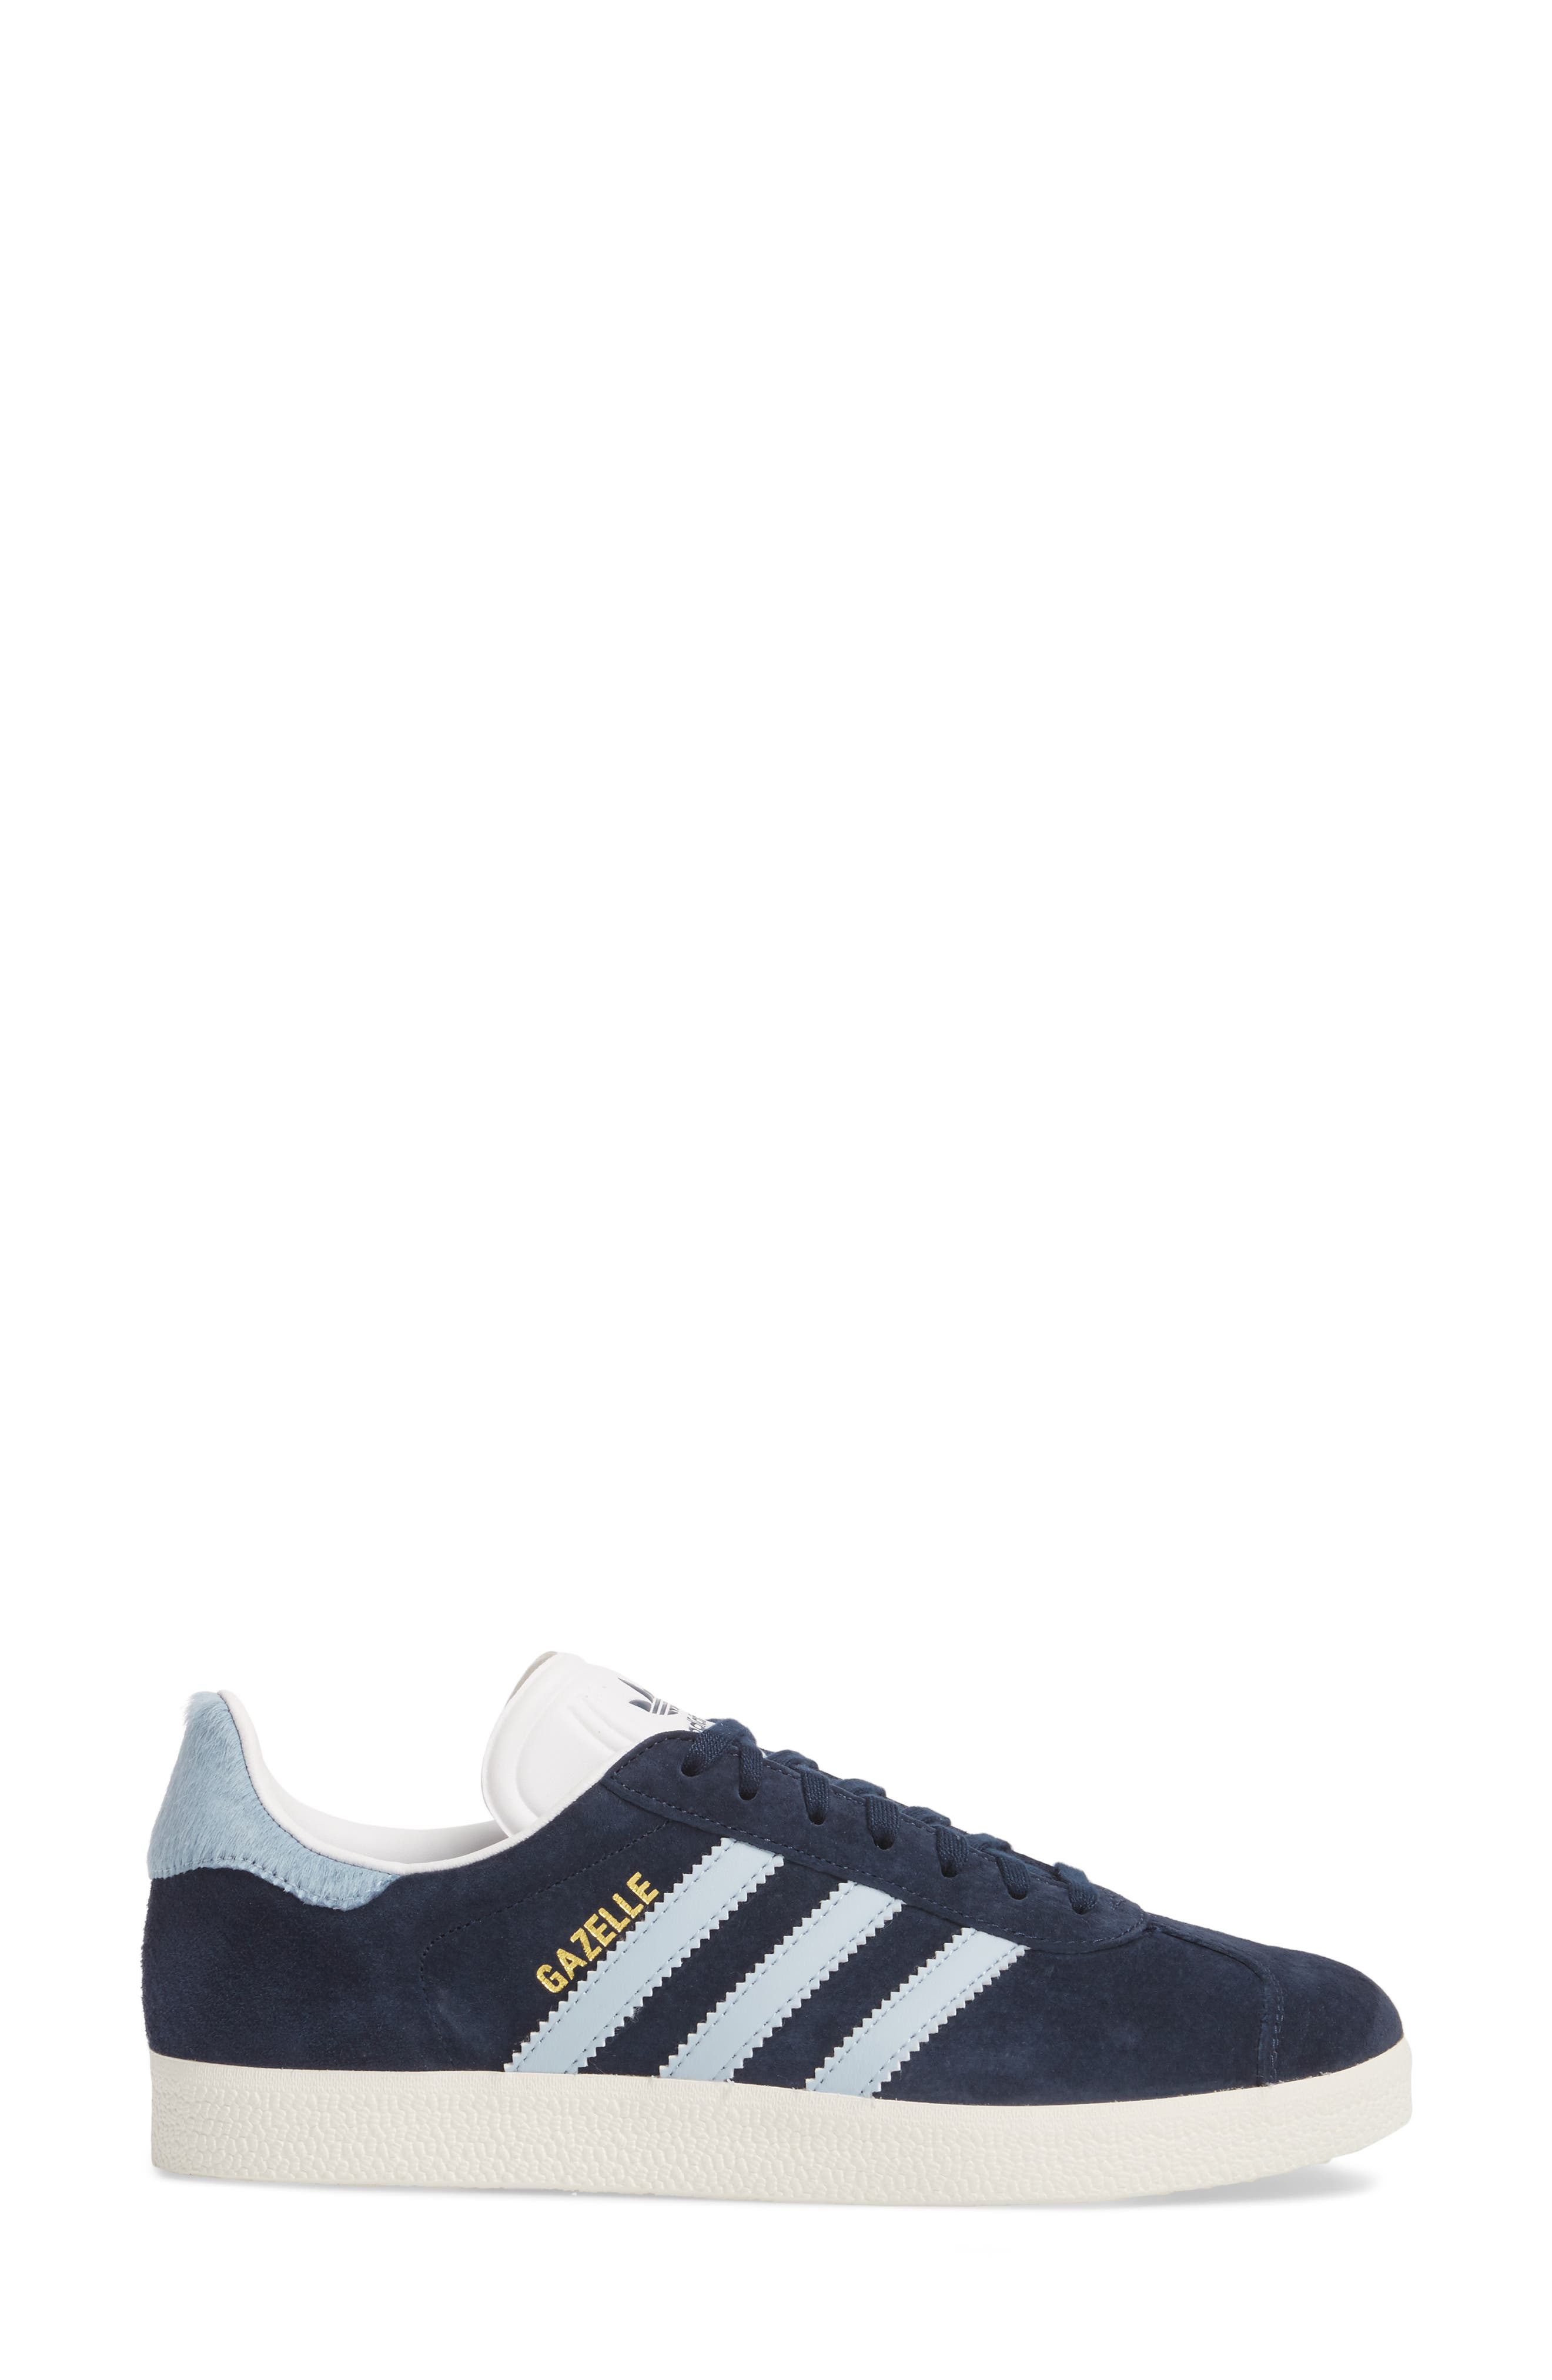 Gazelle Sneaker,                             Alternate thumbnail 3, color,                             Navy/ Easy Blue/ White